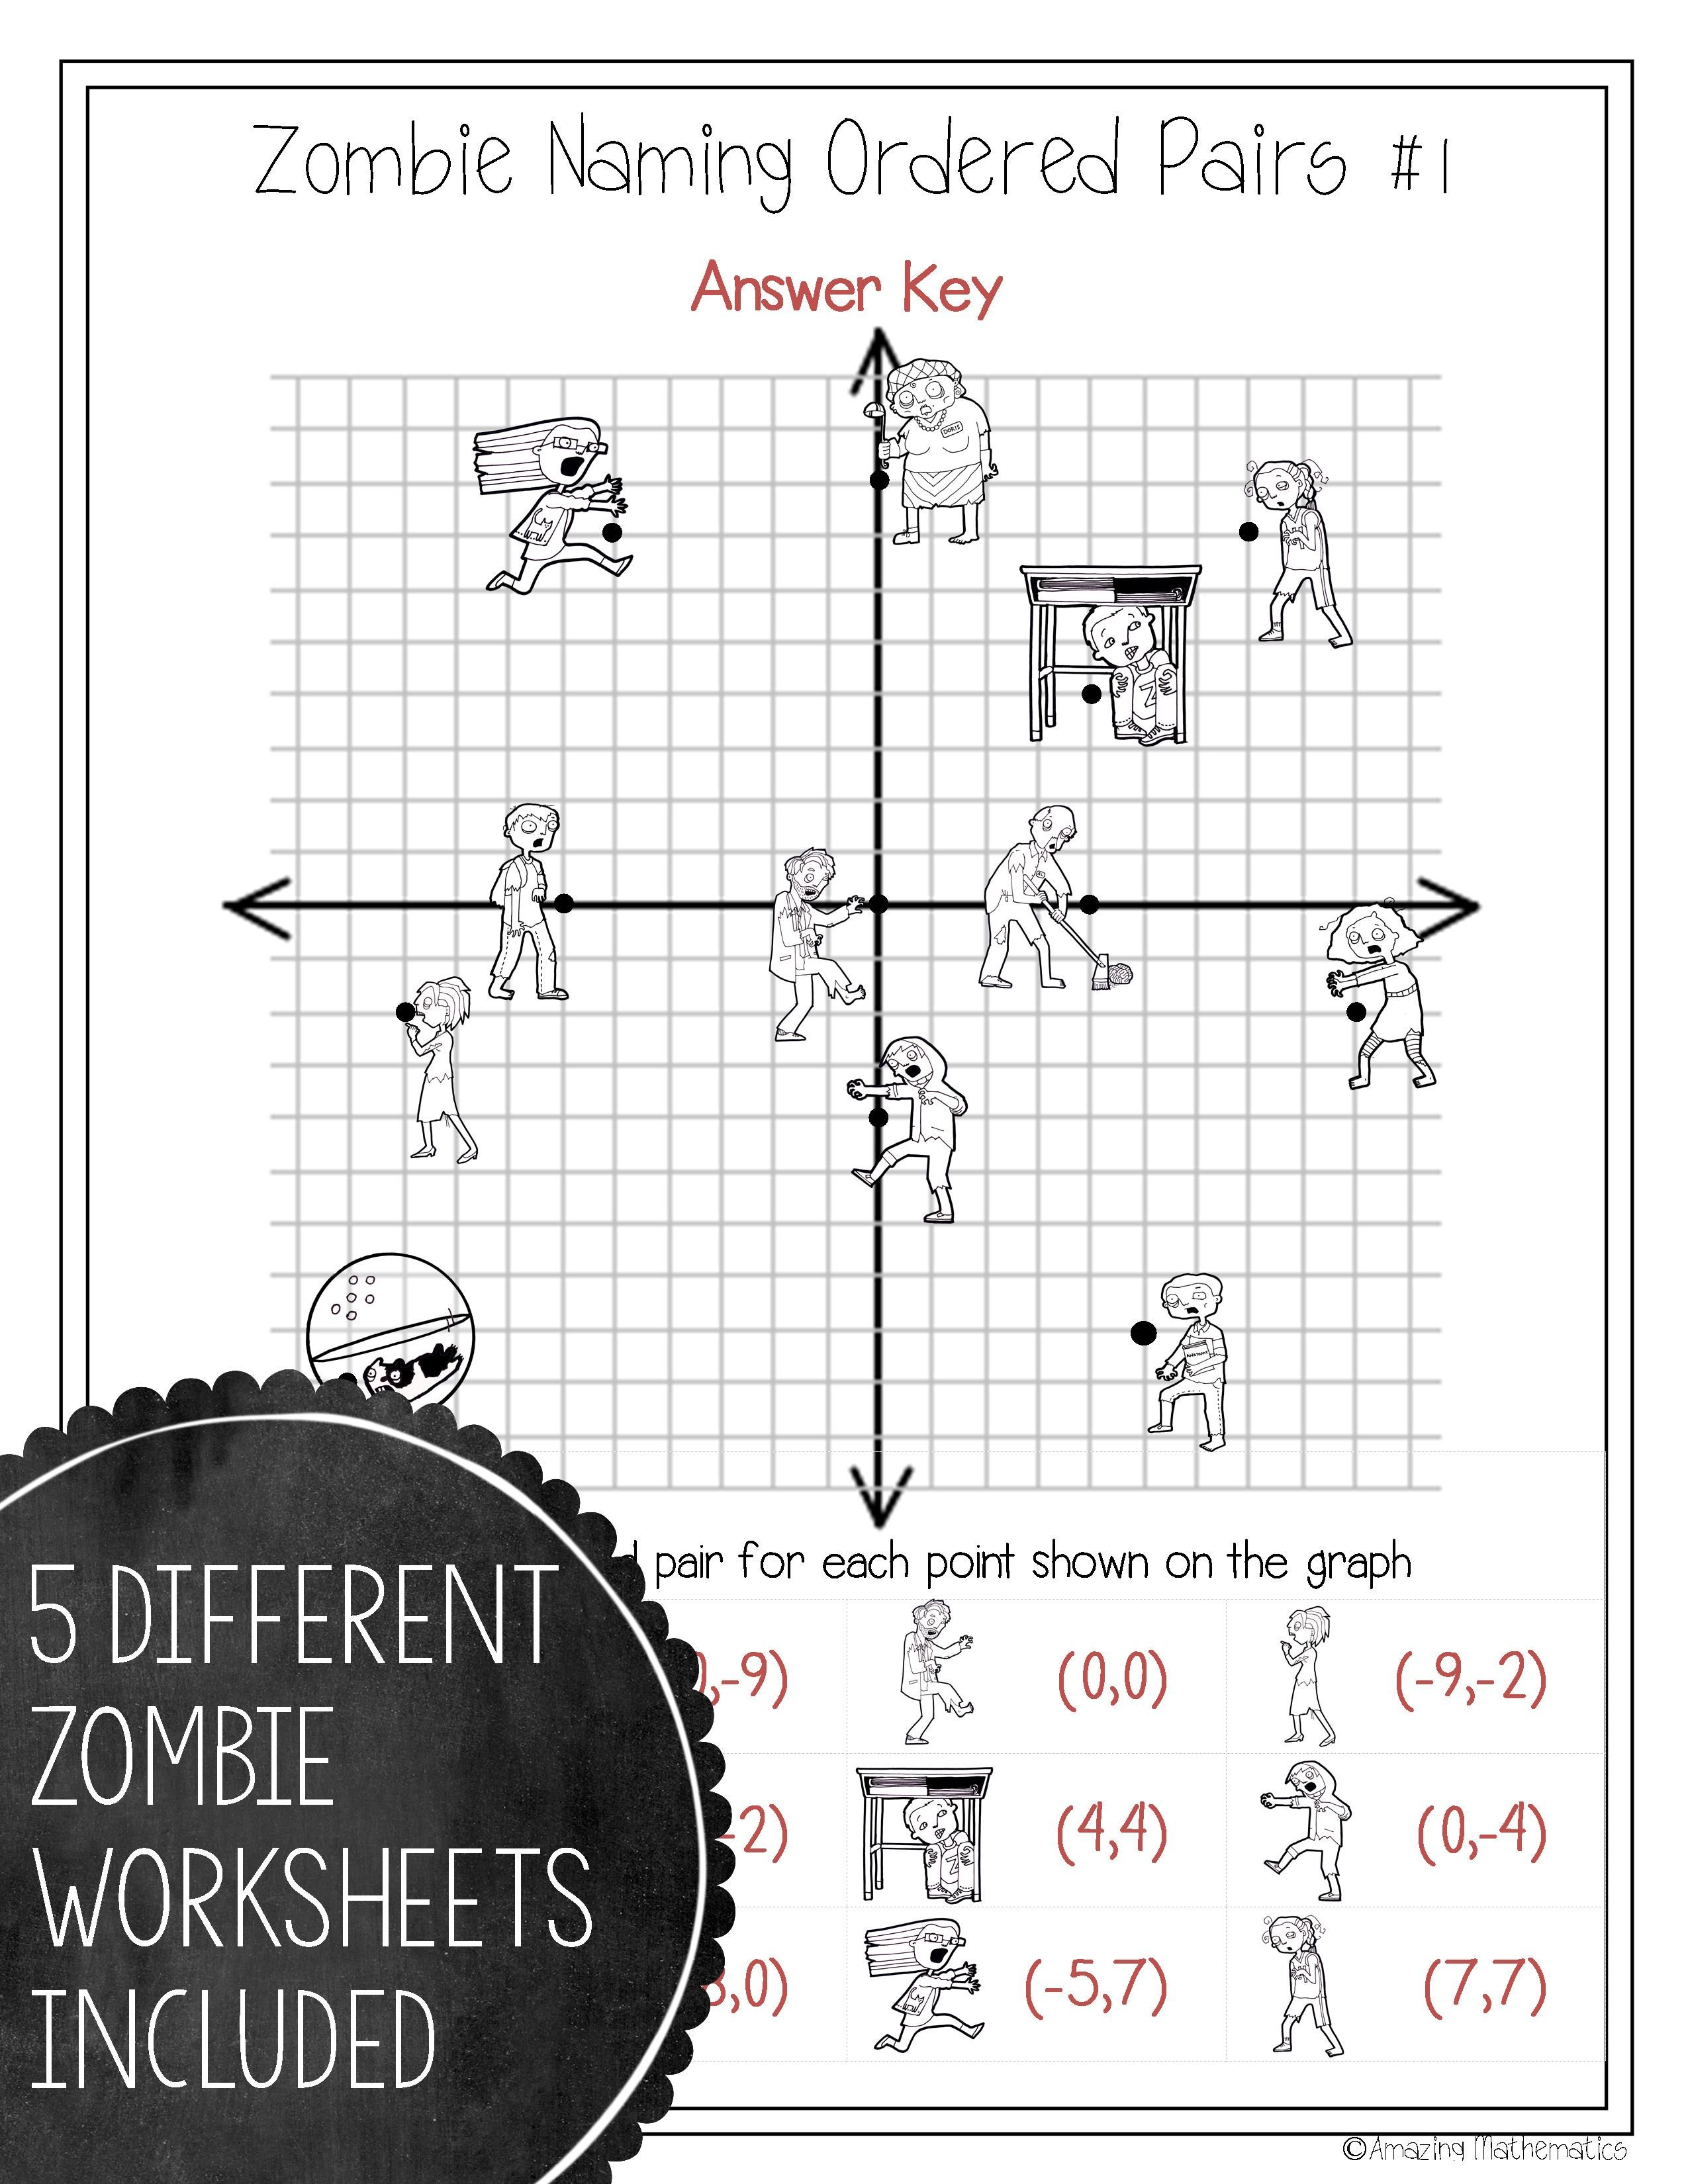 Zombie Naming Ordered Pairs Worksheet